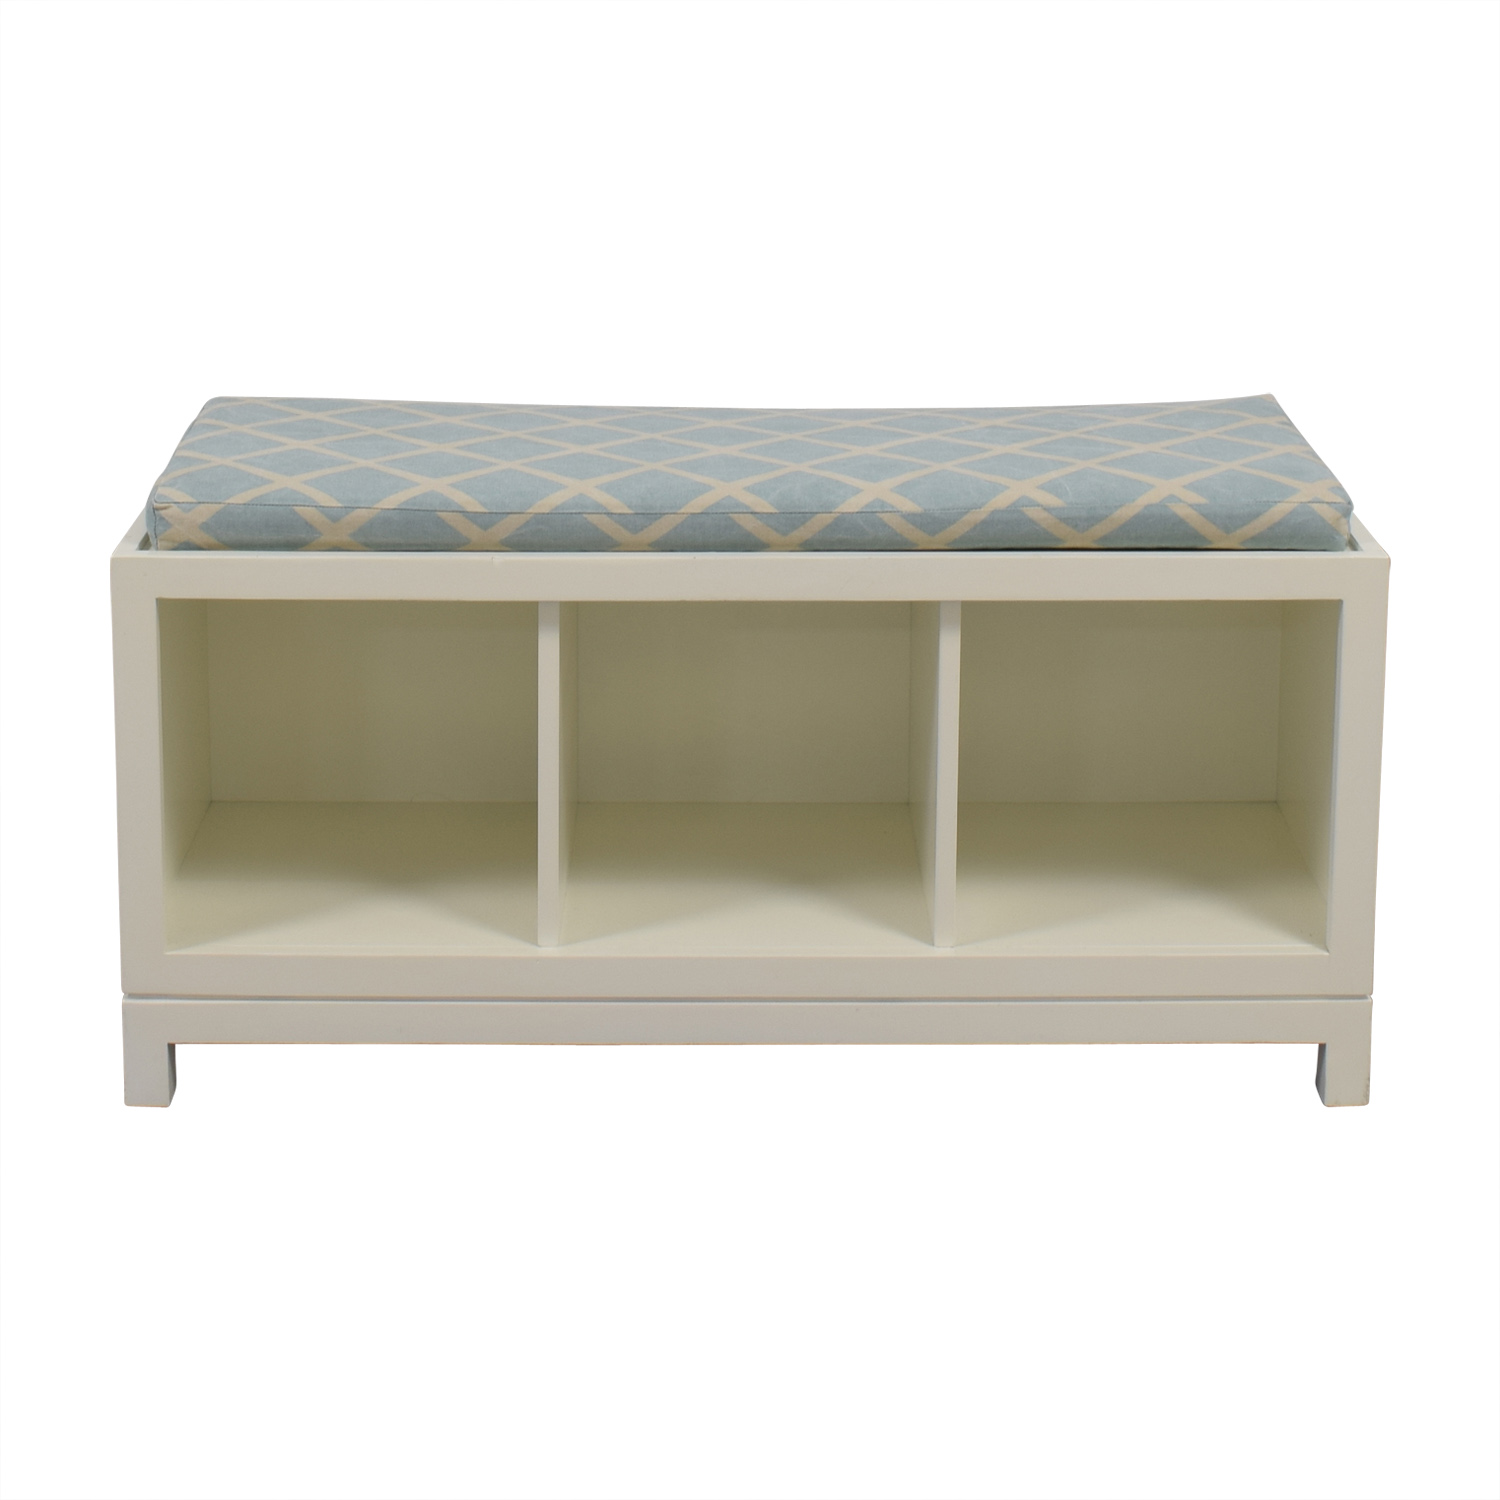 Serena and Lily Serena and Lily White Storage Bench used